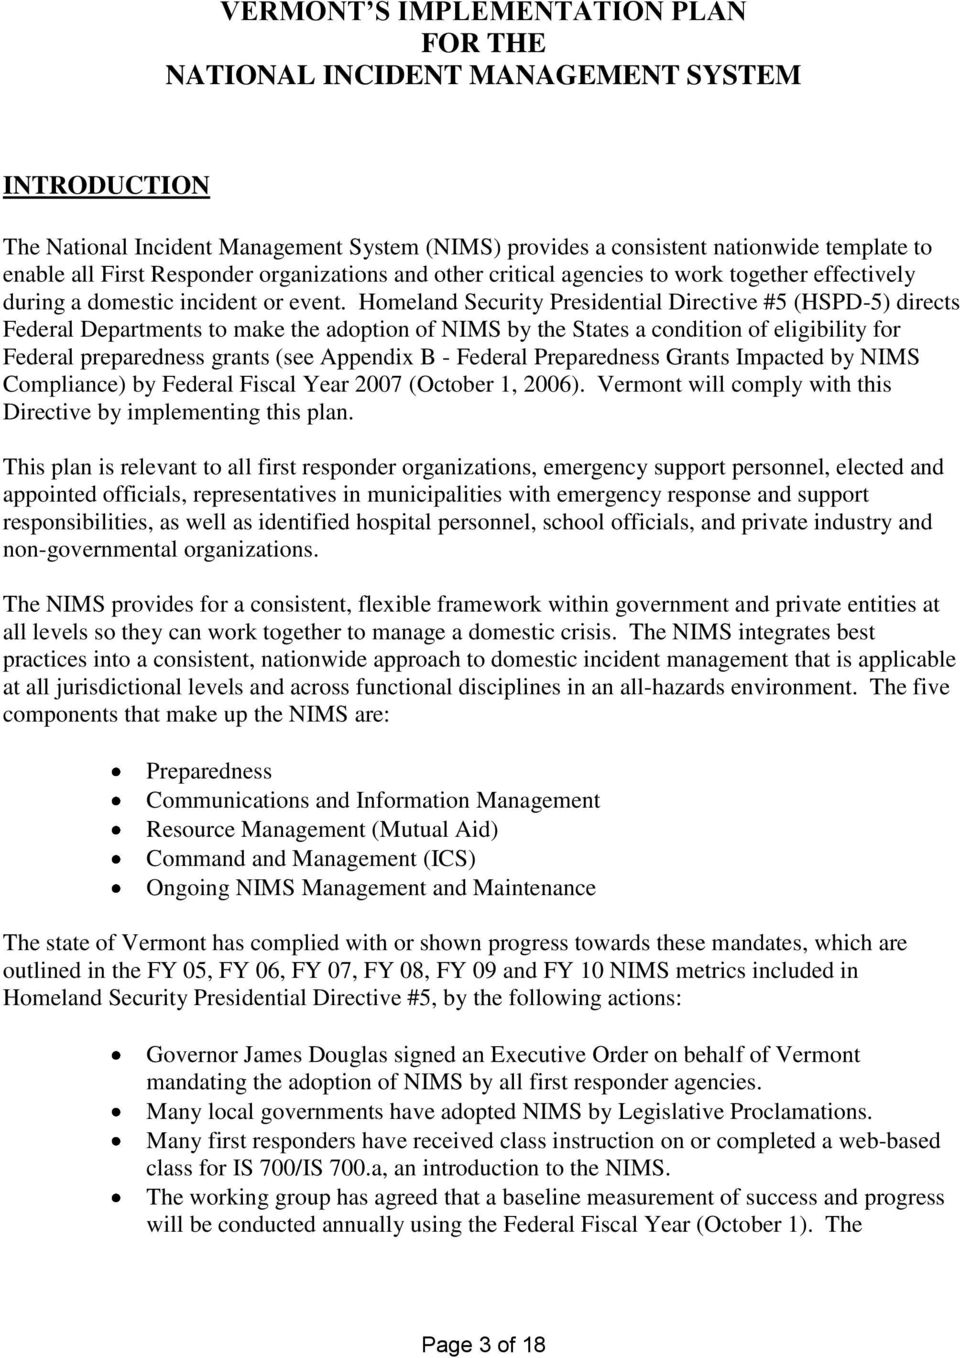 Homeland Security Presidential Directive #5 (HSPD-5) directs Federal Departments to make the adoption of NIMS by the States a condition of eligibility for Federal preparedness grants (see Appendix B